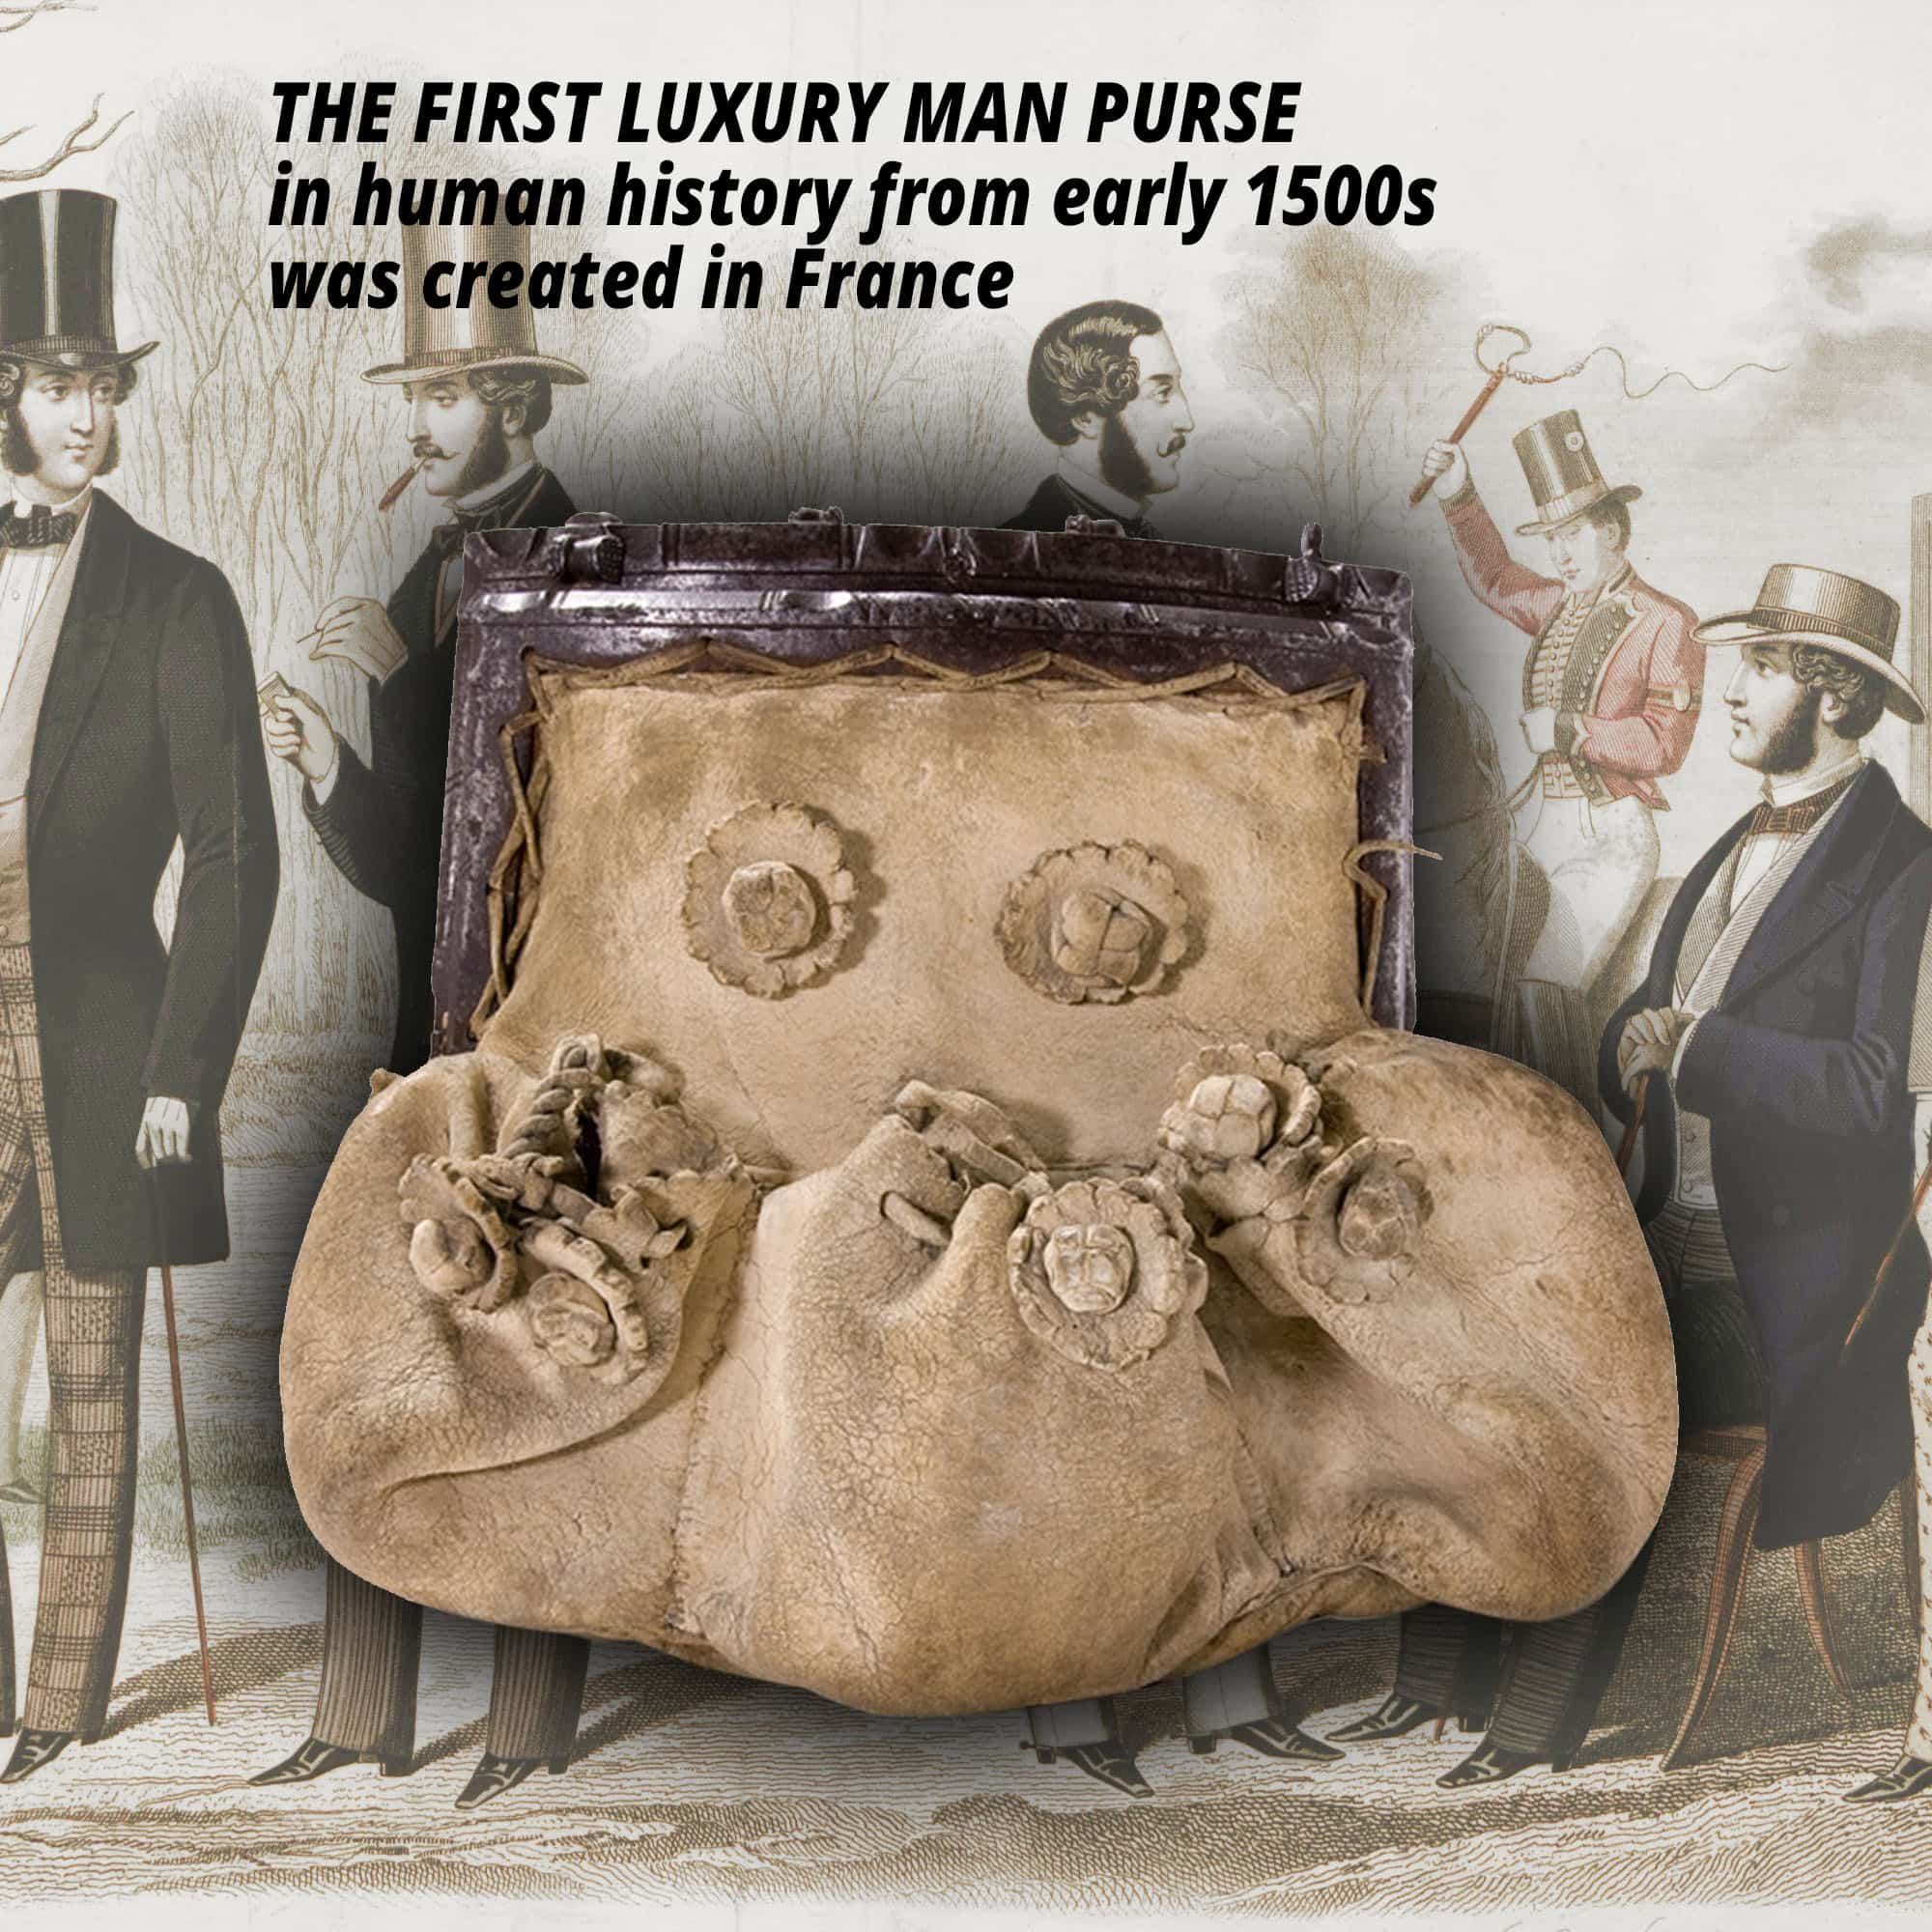 THE FIRST LUXURY MAN PURSE in human history from early 1500s was created in France